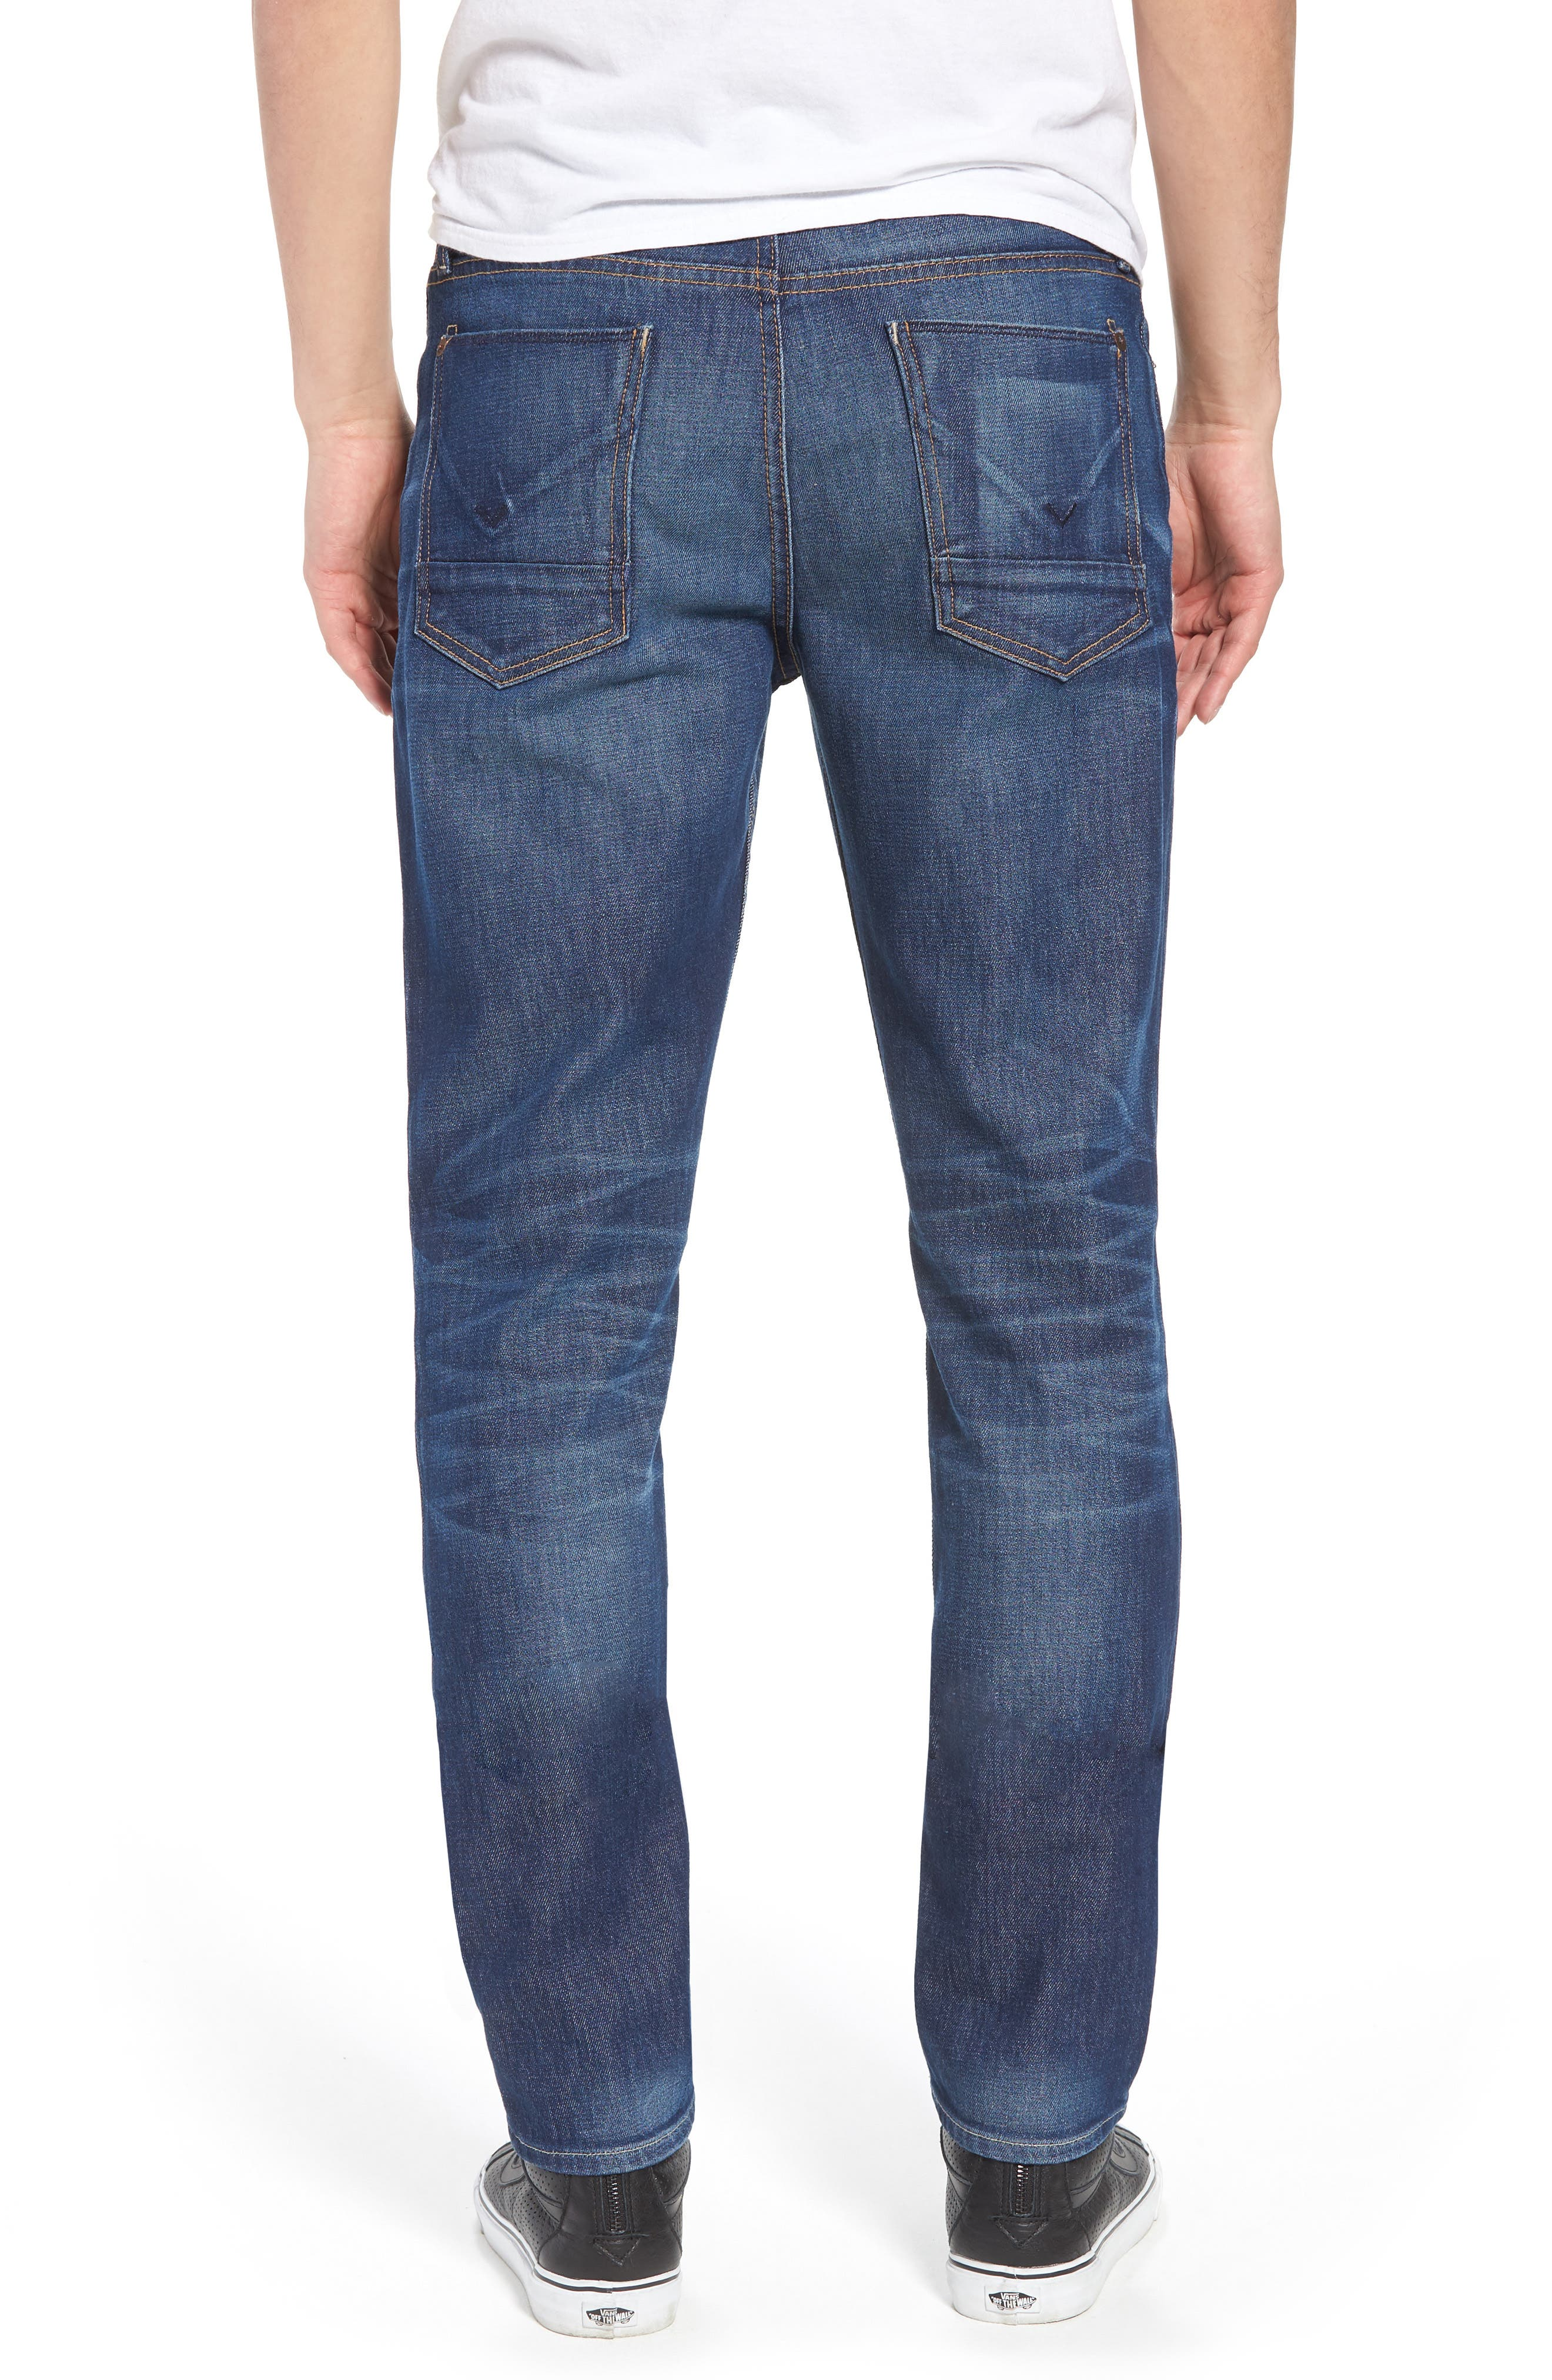 Axl Skinny Fit Jeans,                             Alternate thumbnail 2, color,                             425